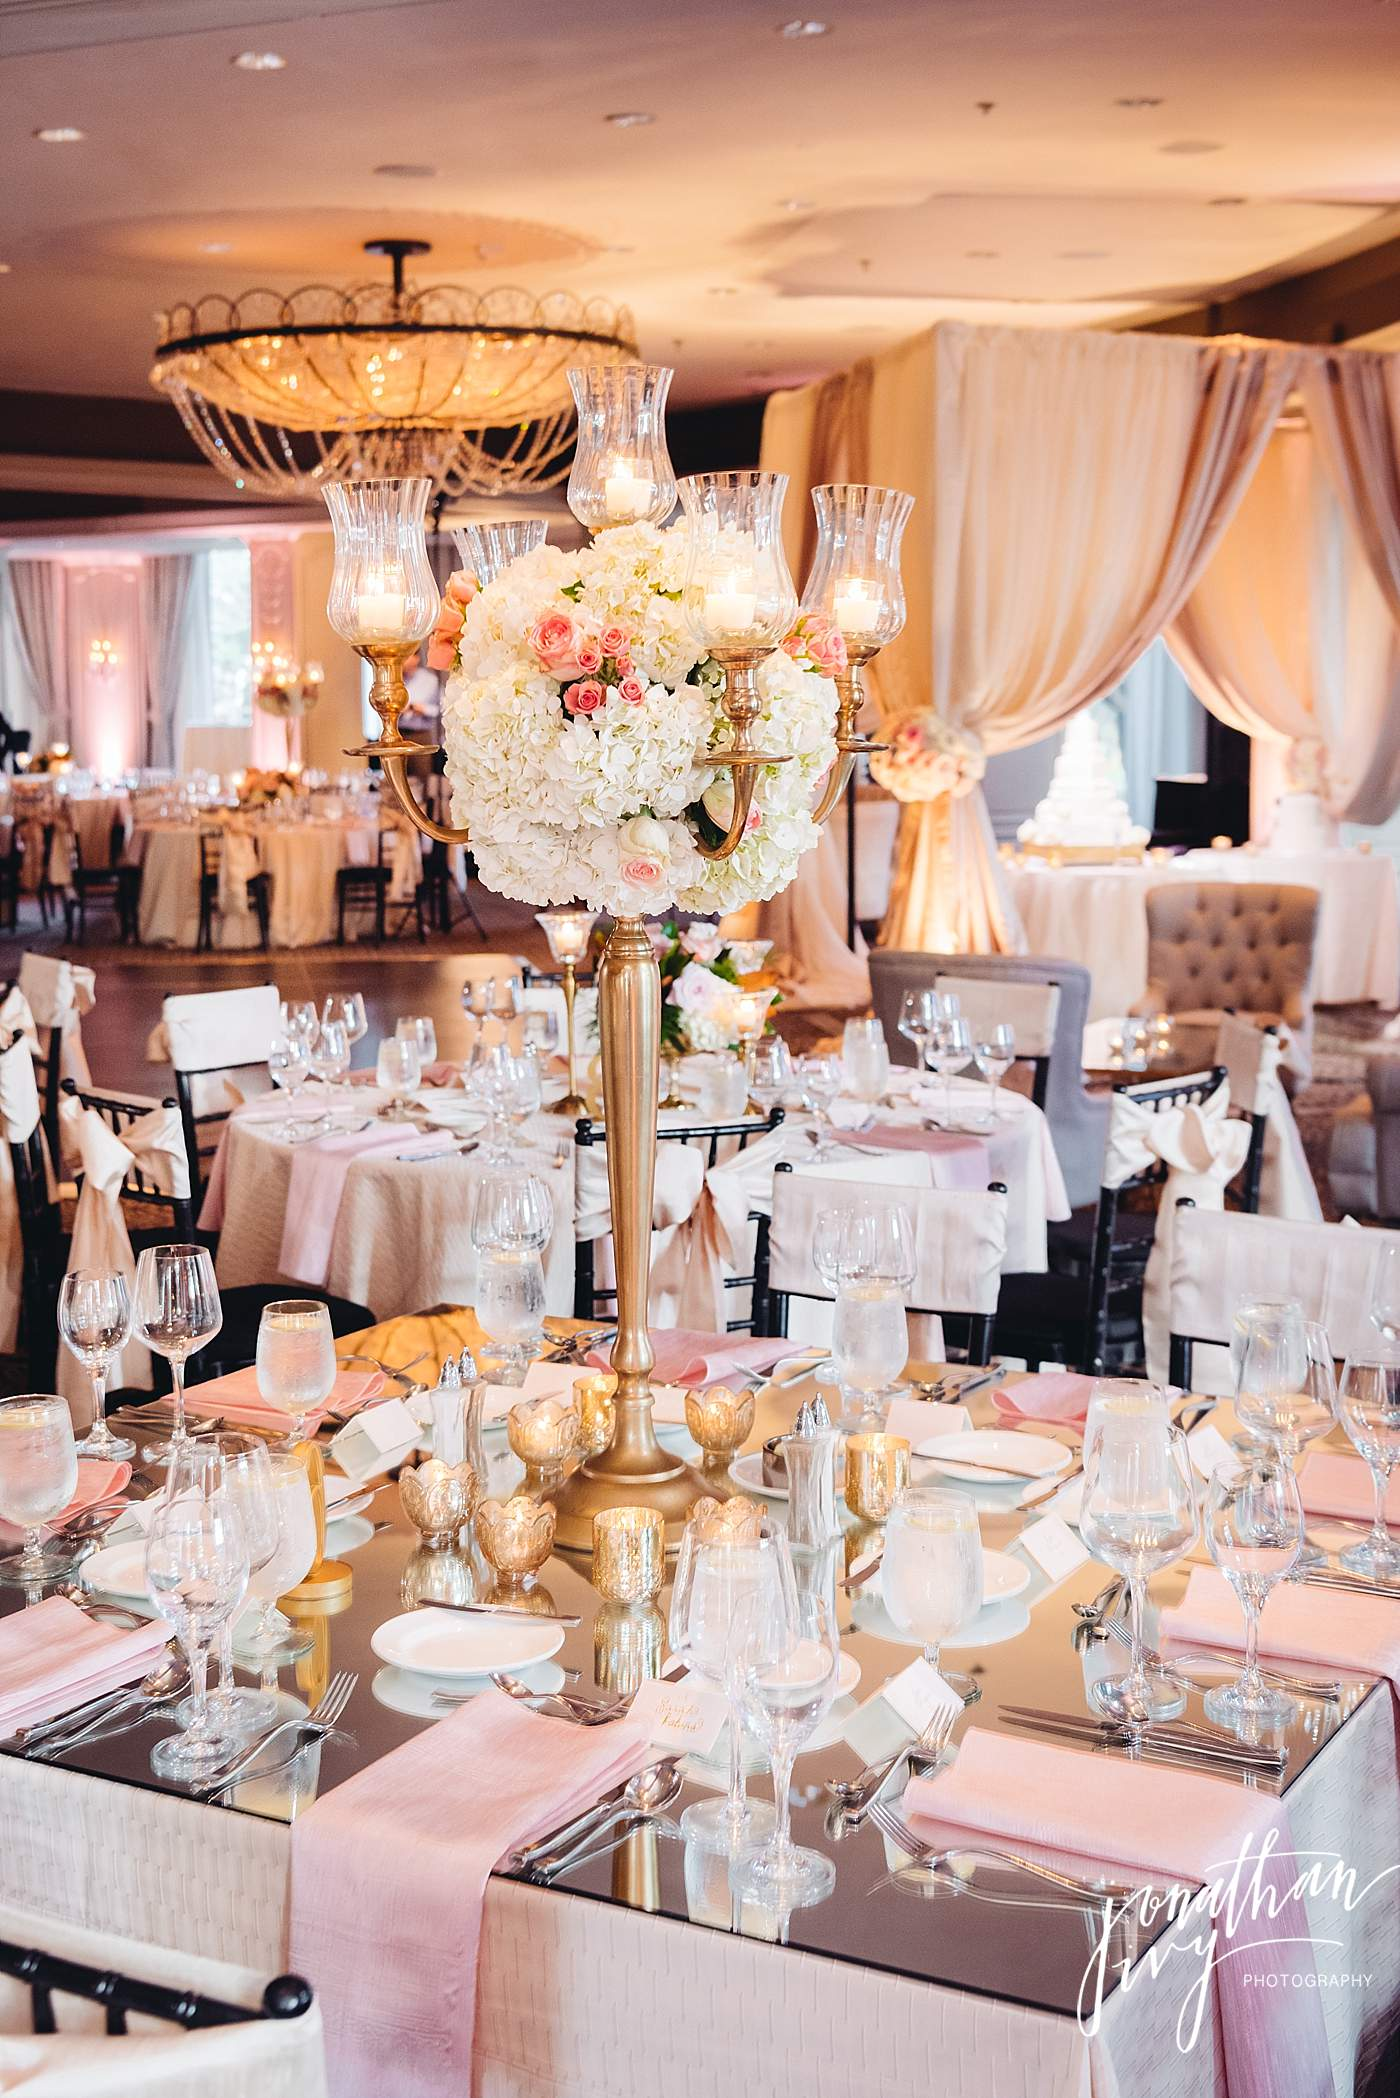 Hotel Zaza Houston Weddings,Hotel Zaza Wedding,Phantom Ballroom,Phantom Ballroom Reception,AJ Urban Petals